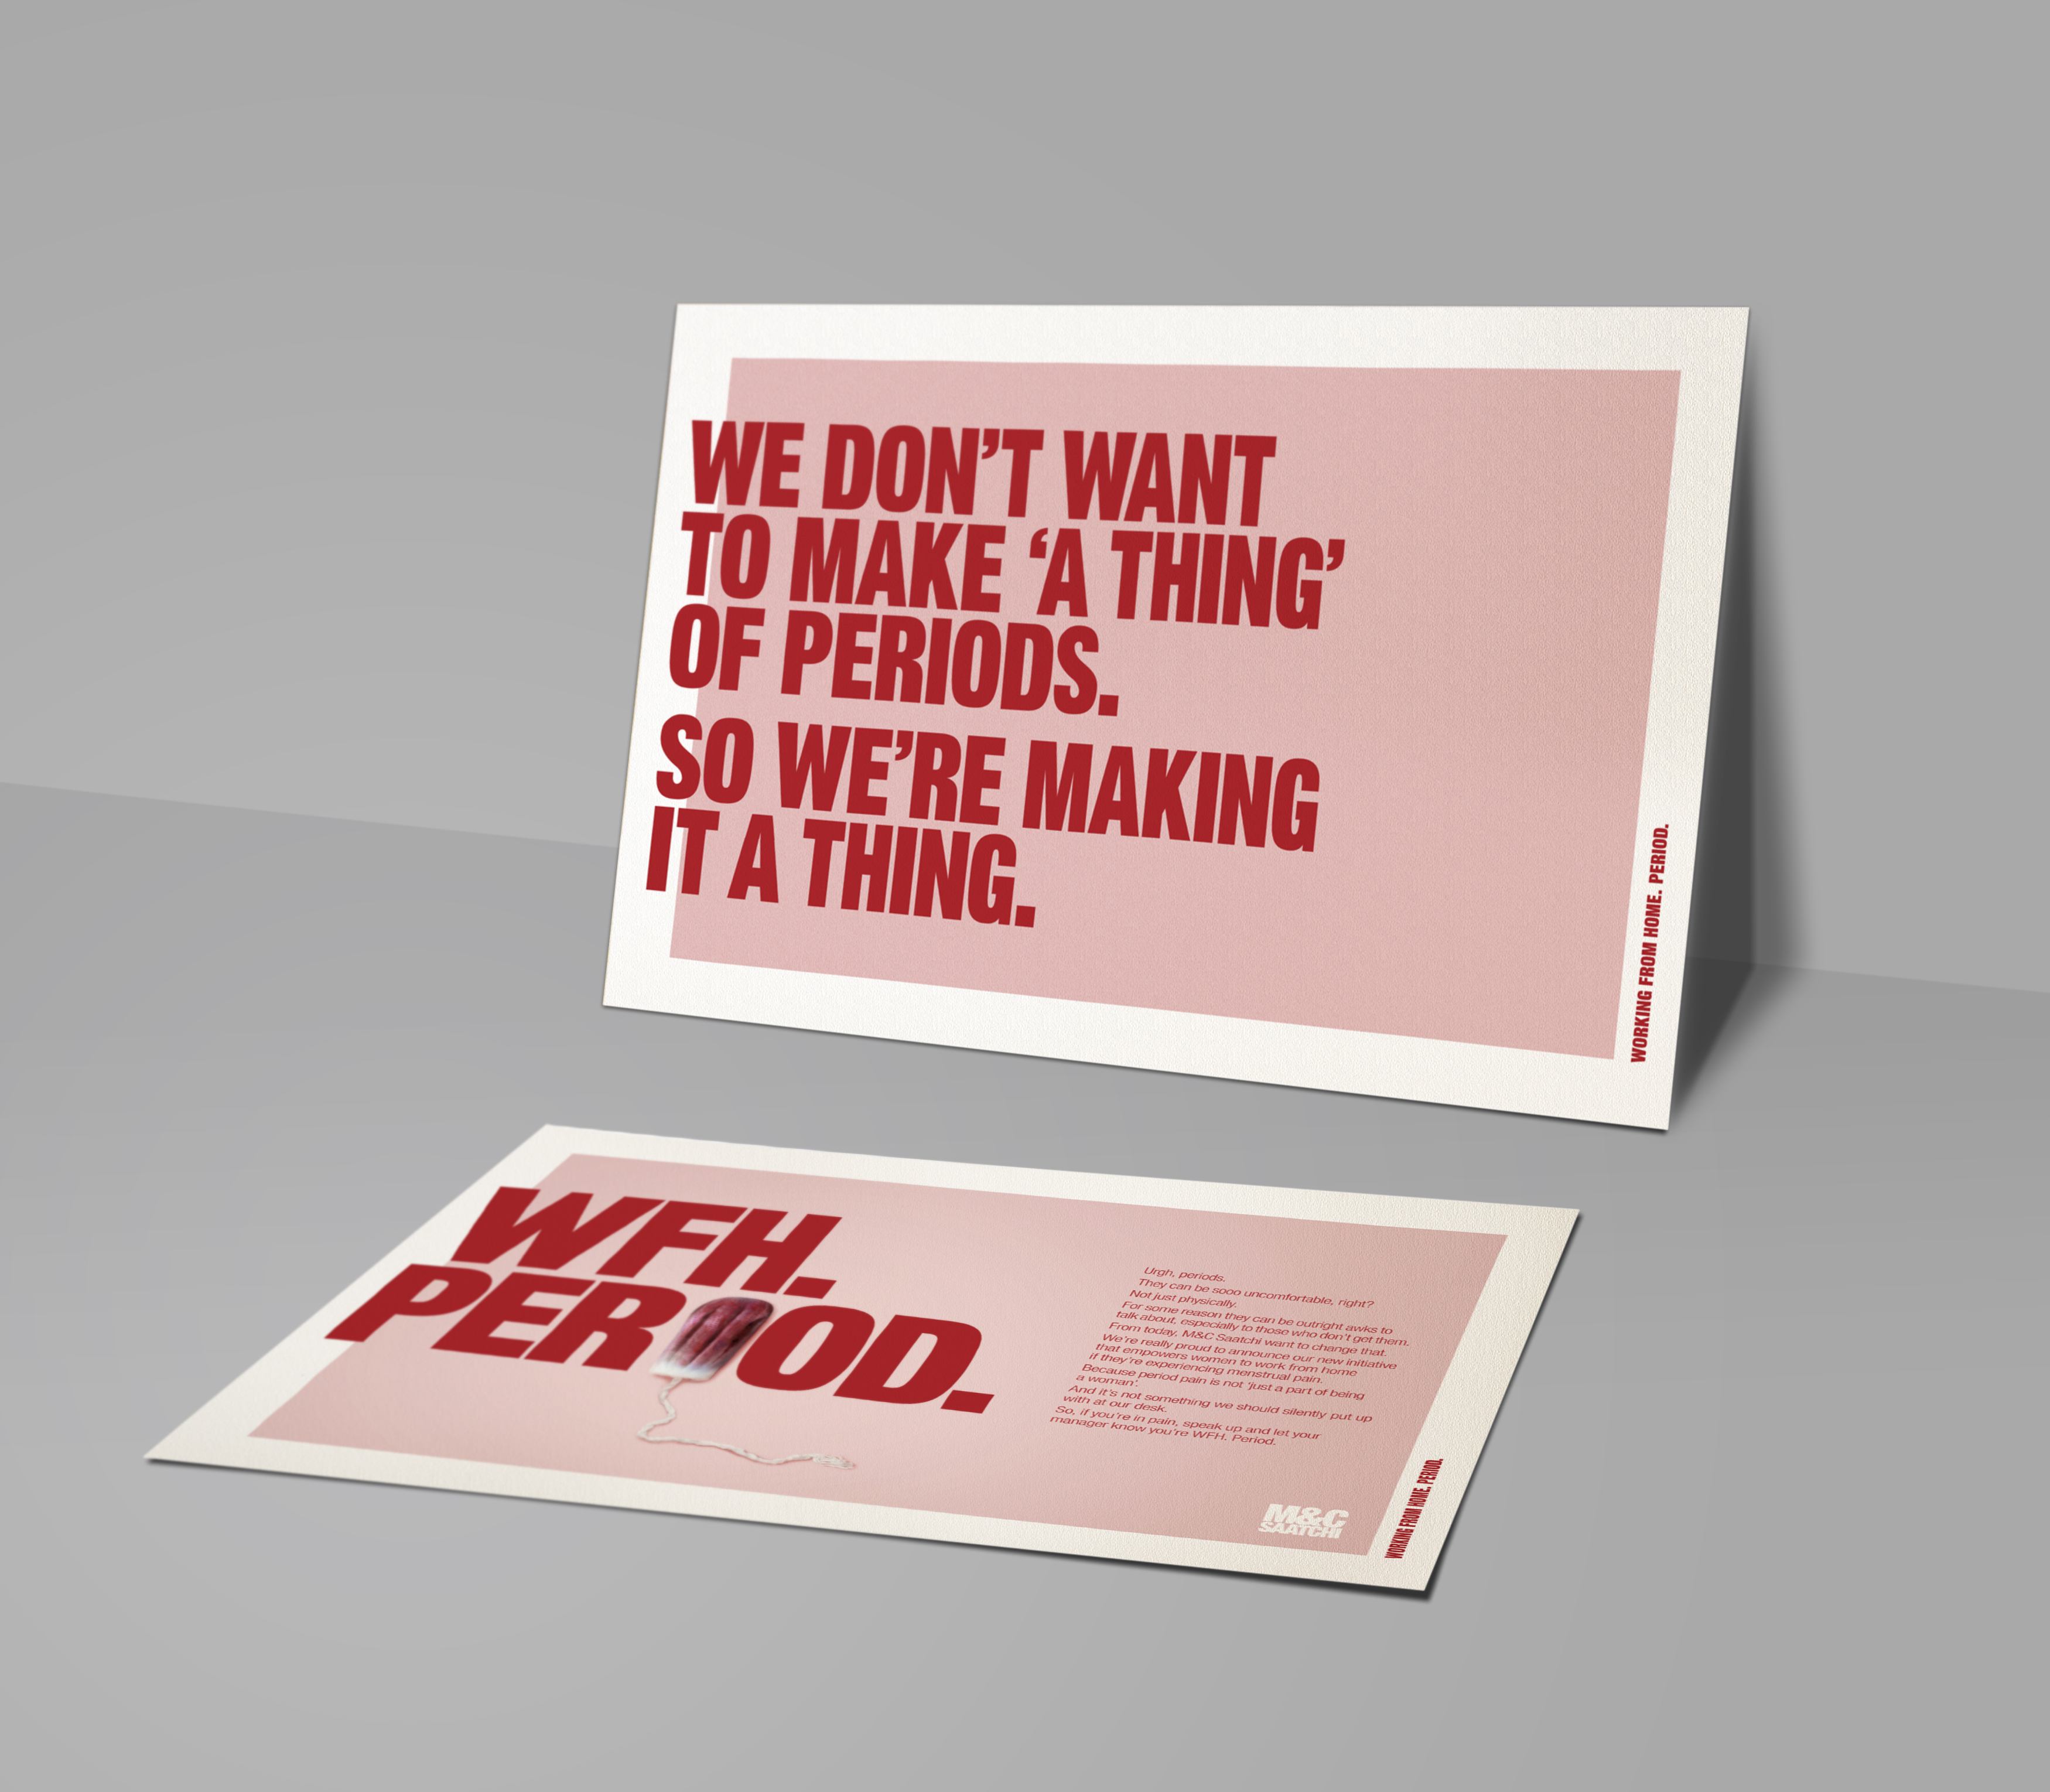 M&C Saatchi Sydney Introduces New 'Working From Home. Period' Initiative